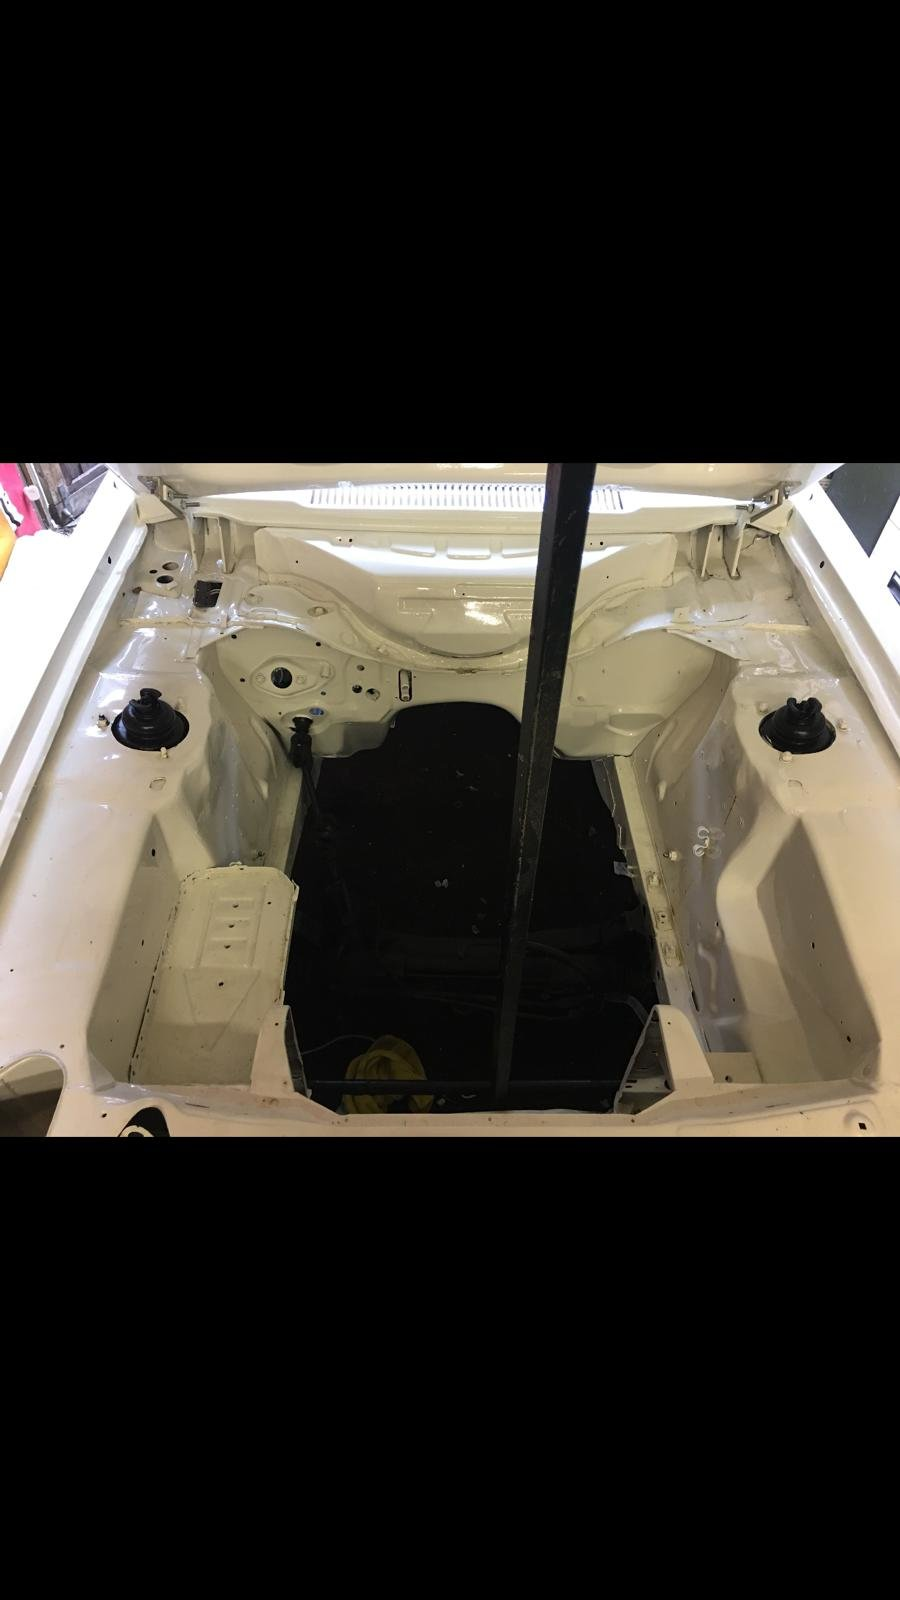 1983 Ford Capri 2.8 i restored requires finishing SOLD (picture 5 of 6)